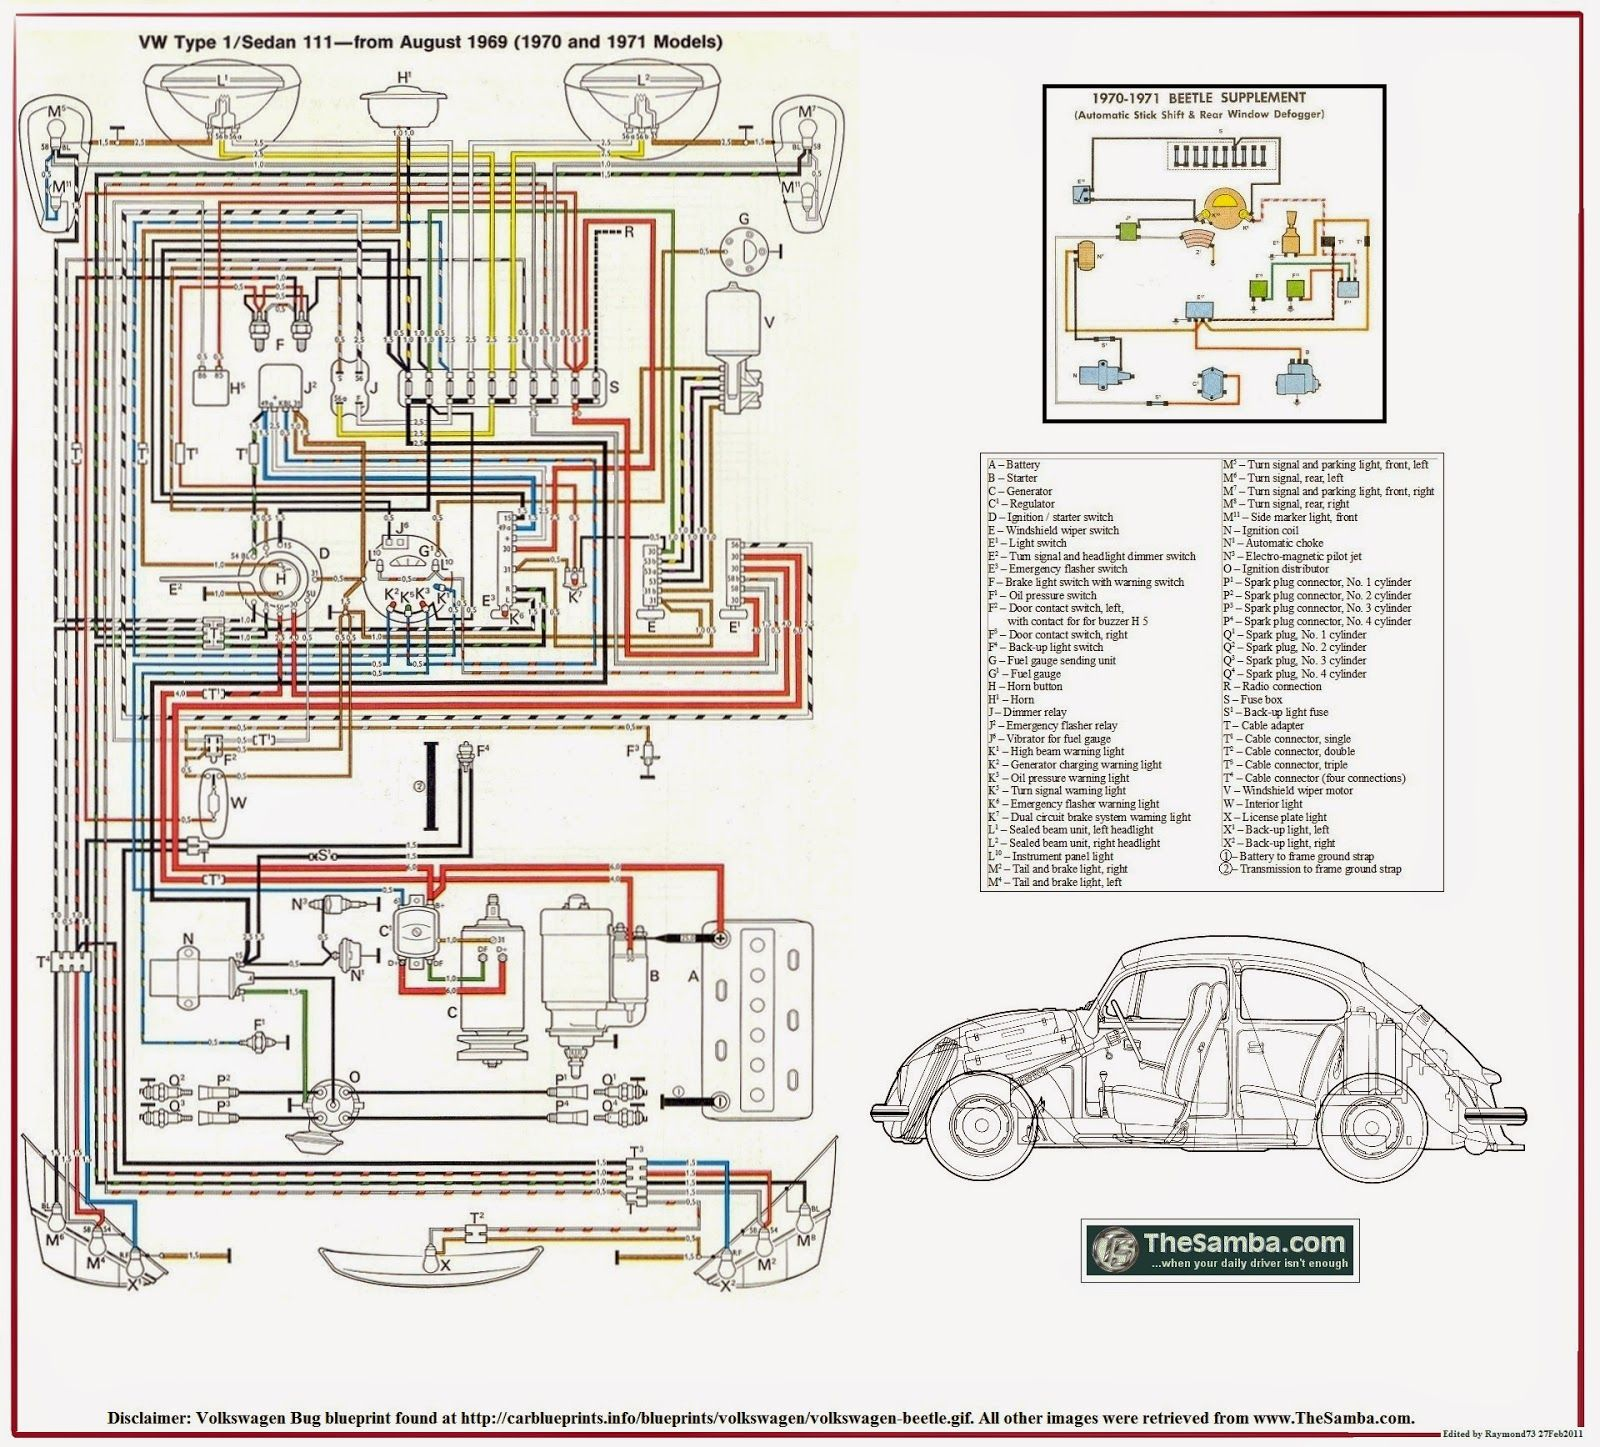 c42f7e50c6cd2df691326f8c1e5c6e97 urbi et orbi my bucket list journals volkswagen (vw) beetle 76 vw beetle wiring diagram at edmiracle.co